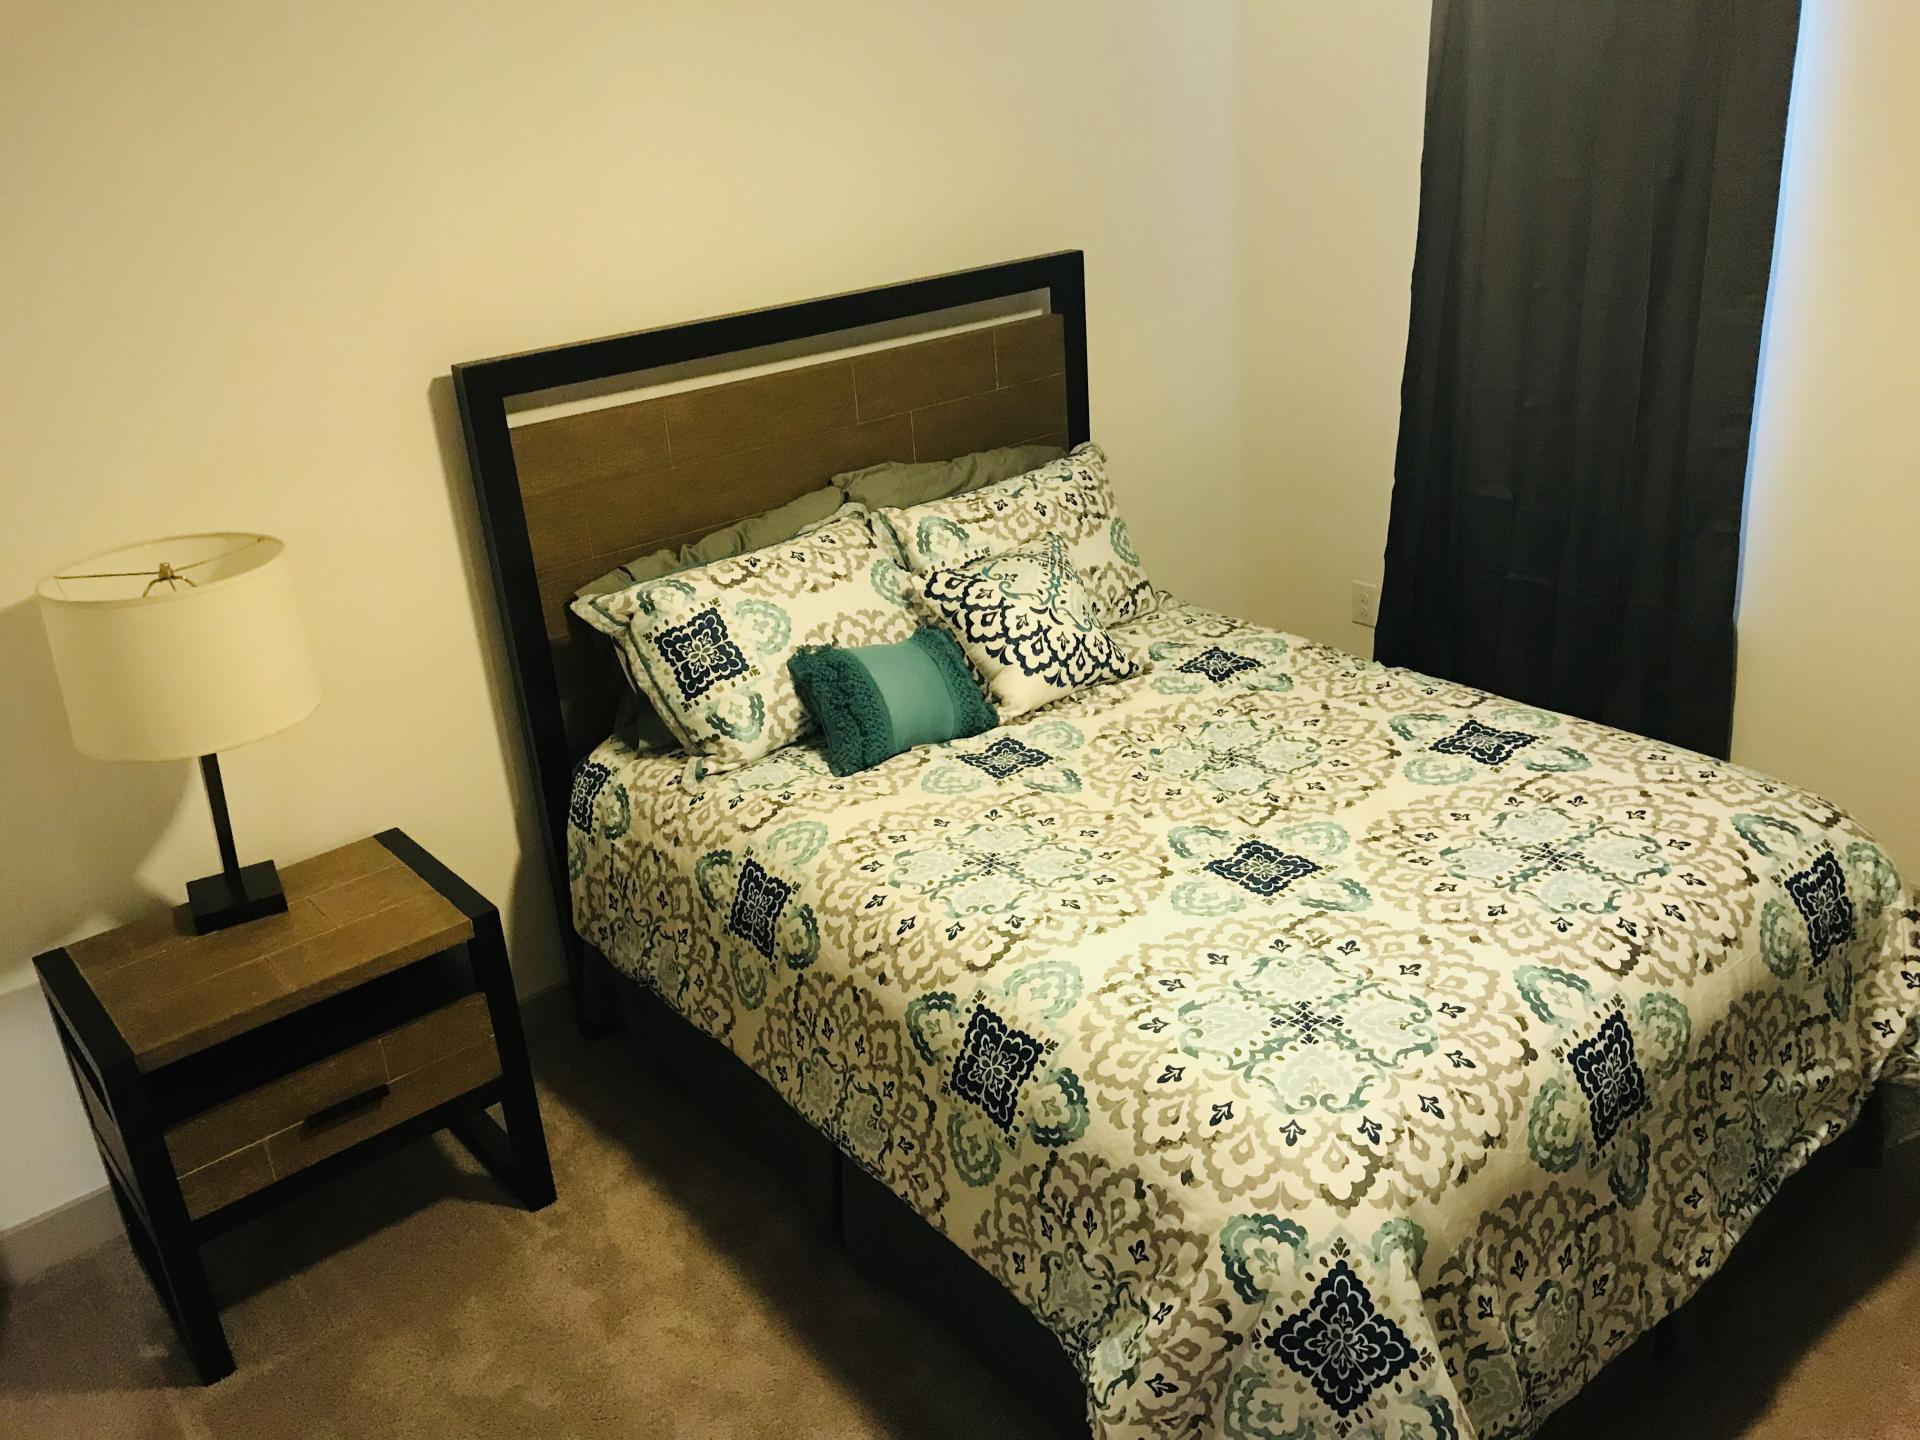 Bedroom at Preserve at Iron Horse Apartment, Centre, Franklin